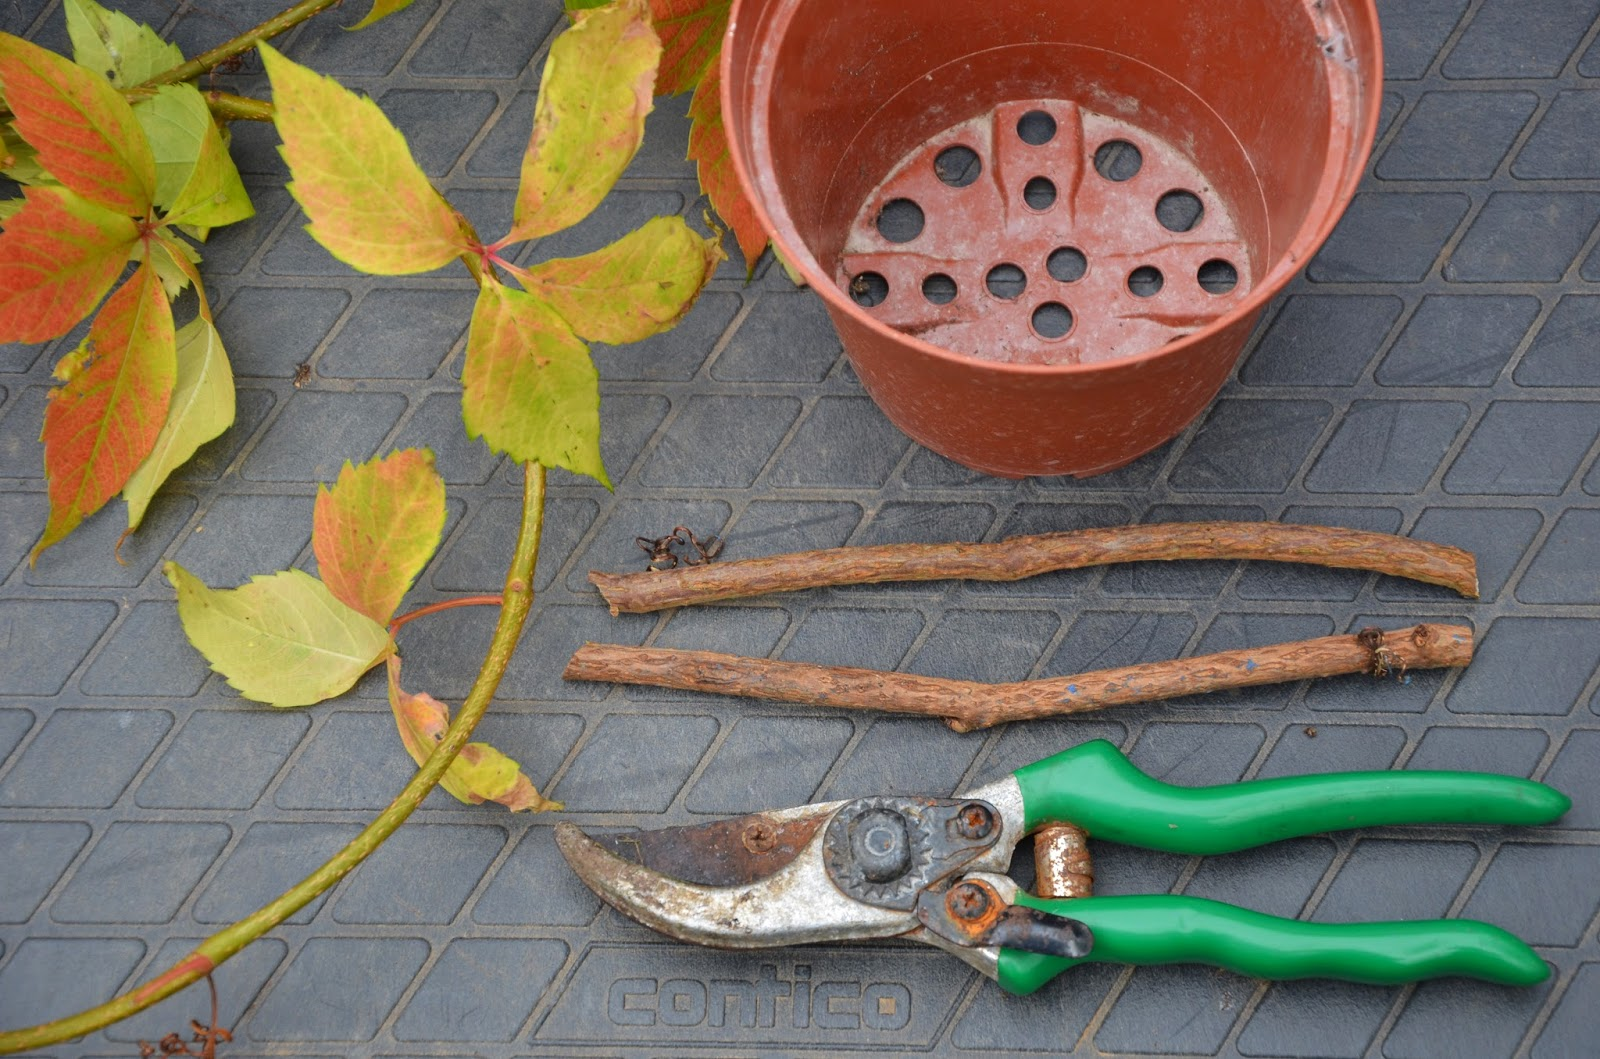 How To Grow The Virginia Creeper From Cuttings The Garden